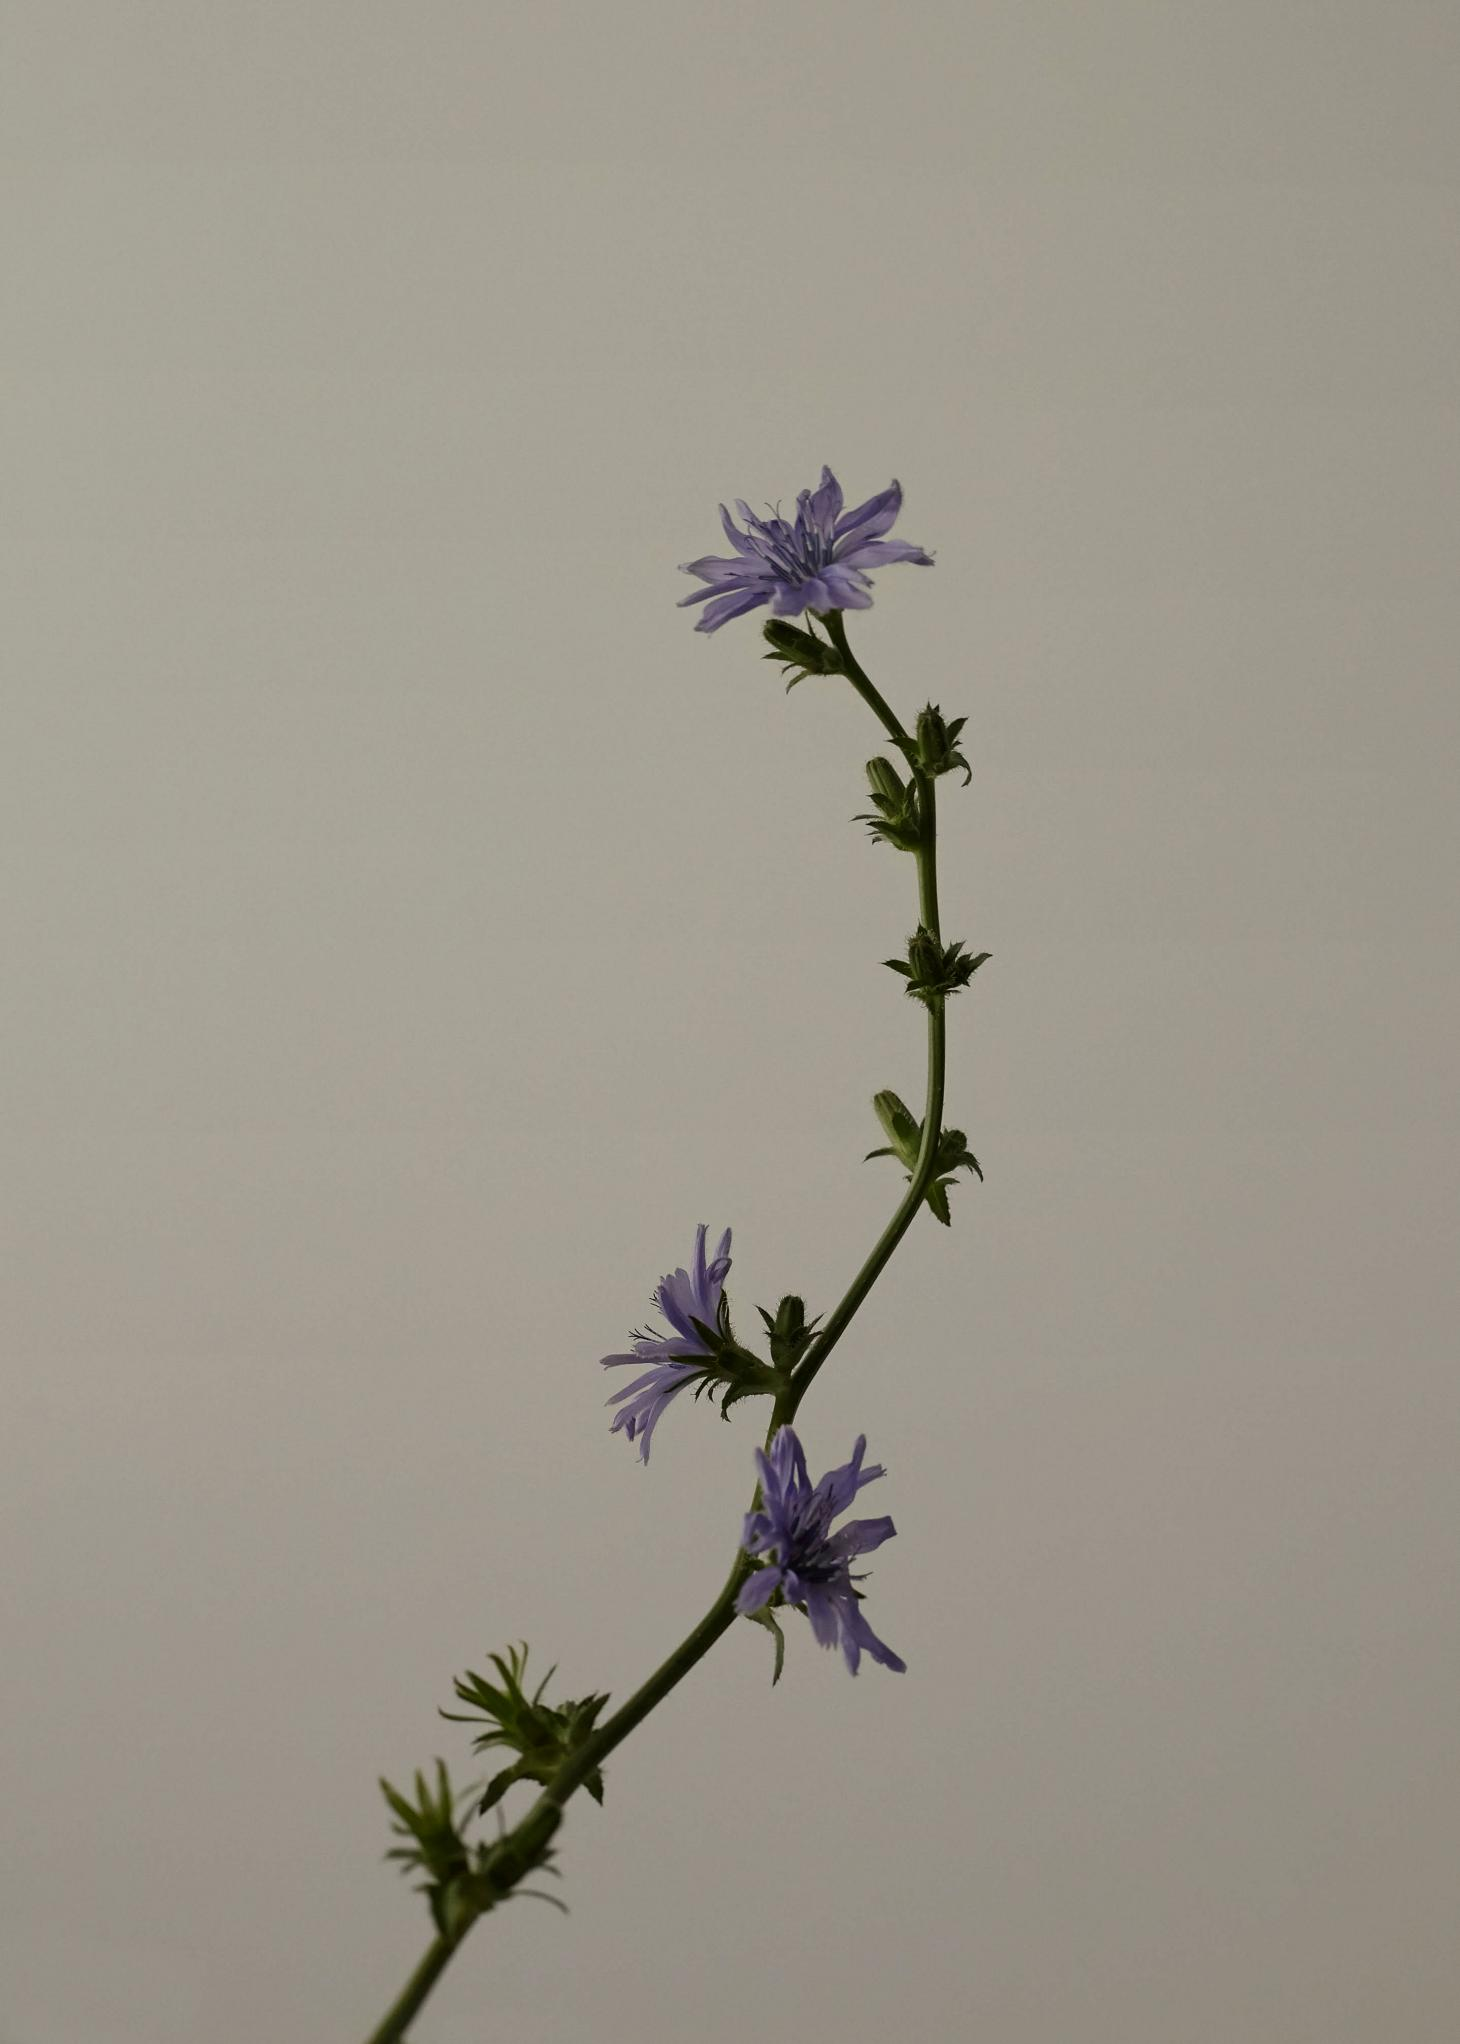 Image of purple flower with green steam against a grey background courtesy of Flomacy